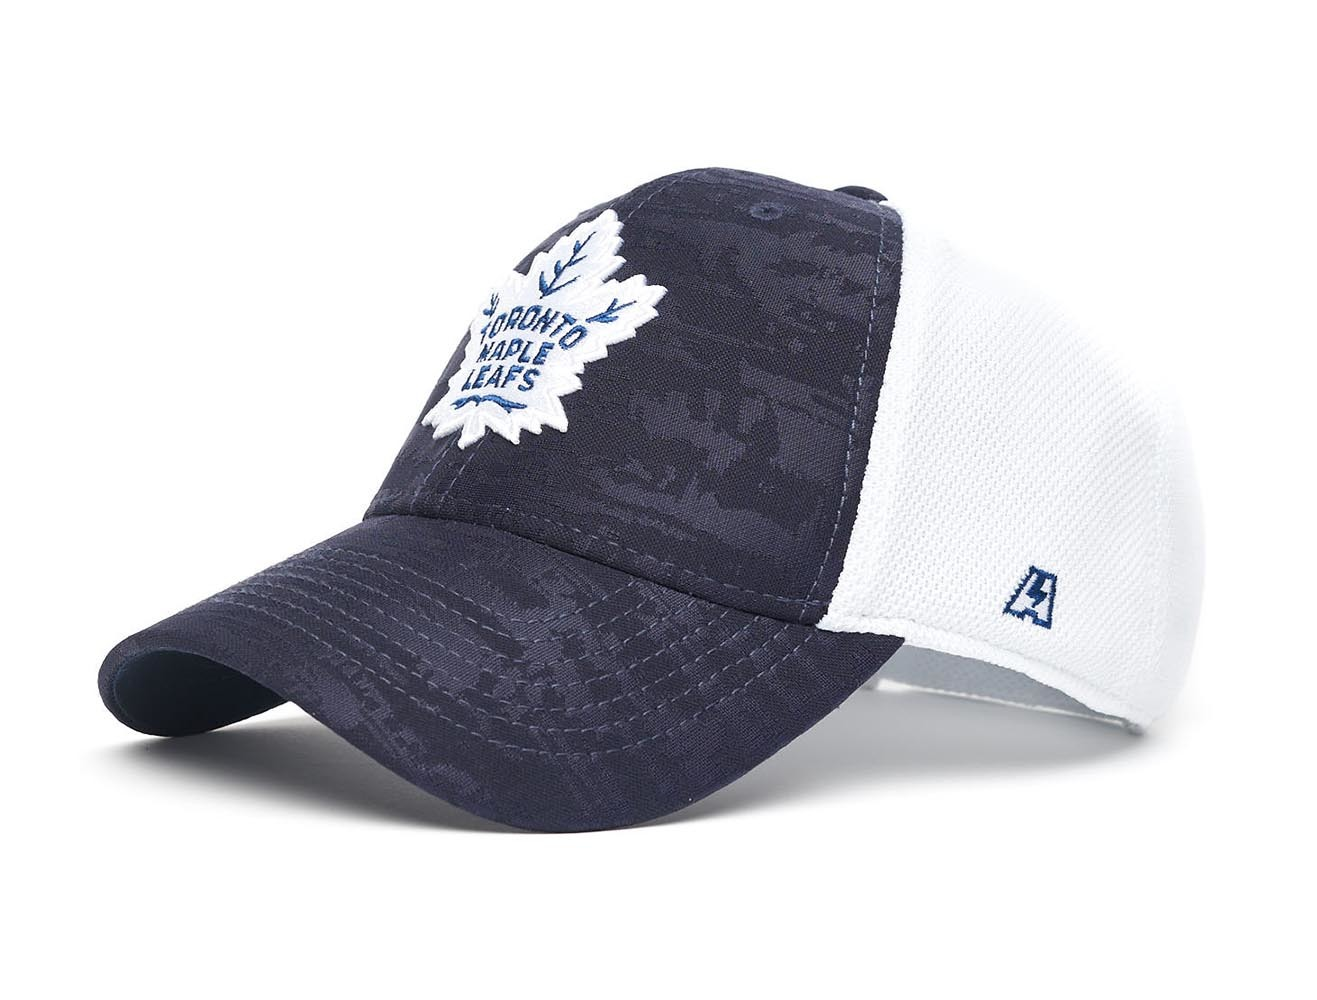 Бейсболка NHL Toronto Maple Leafs (размер S)